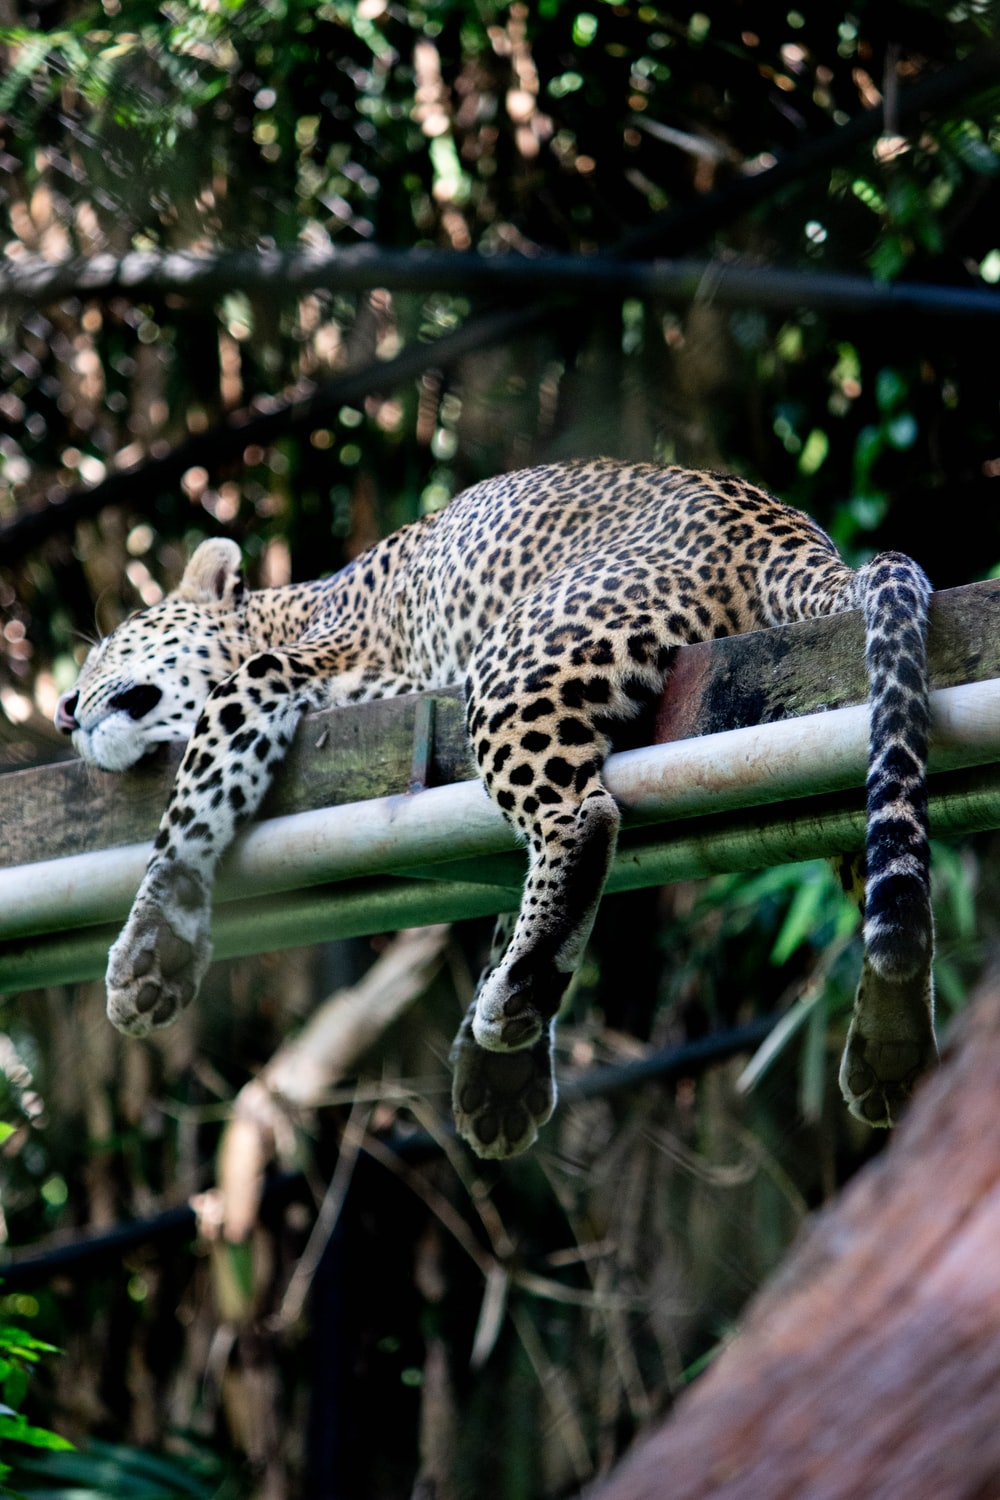 leopard on green wooden fence during daytime